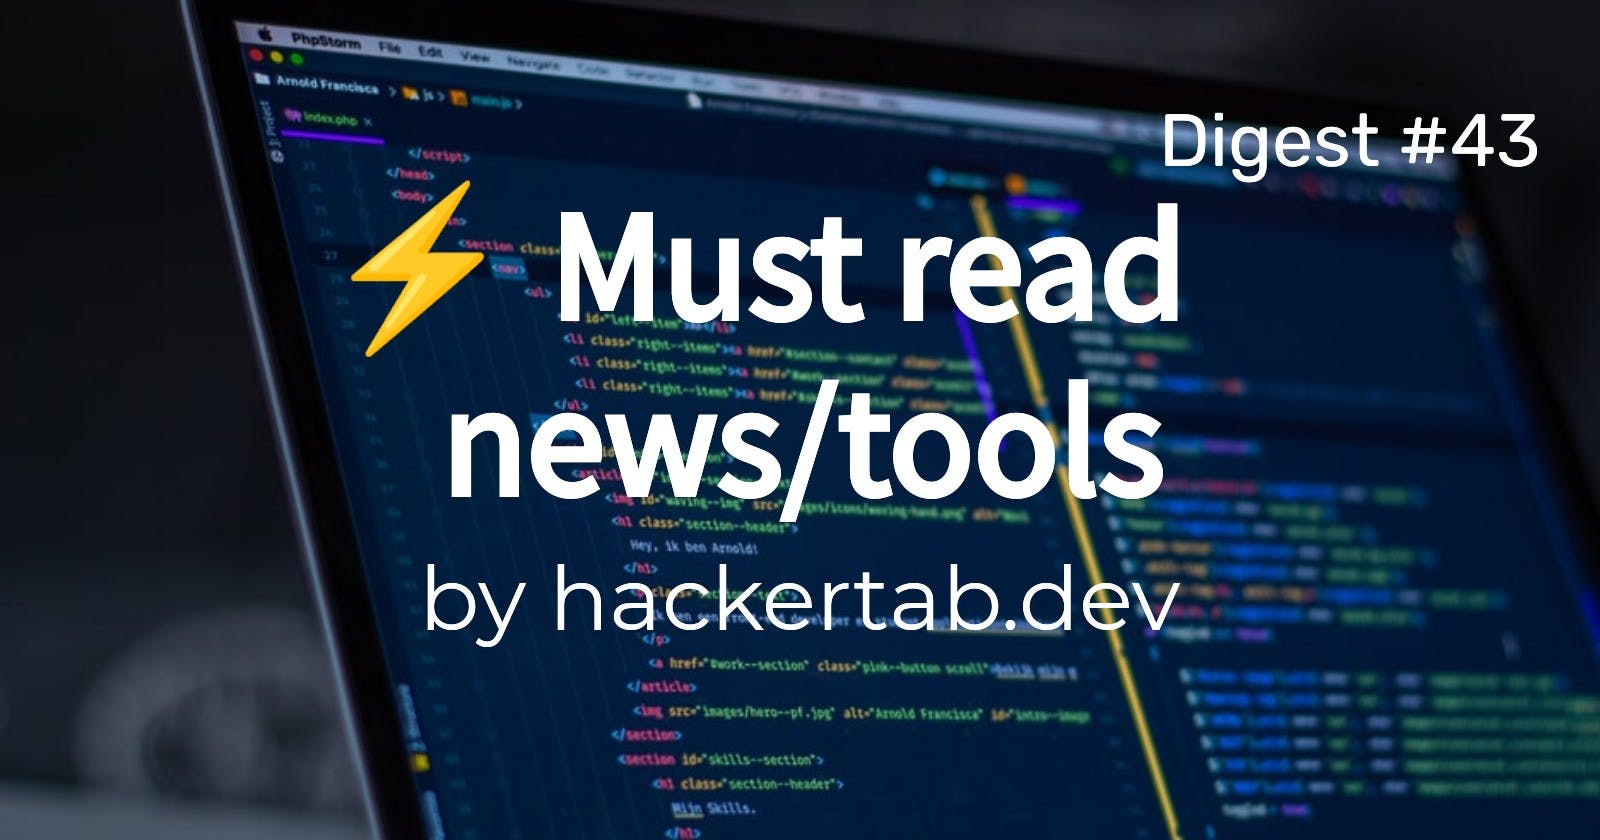 🔥 Trending News, Repos and Products of the day - Digest #43